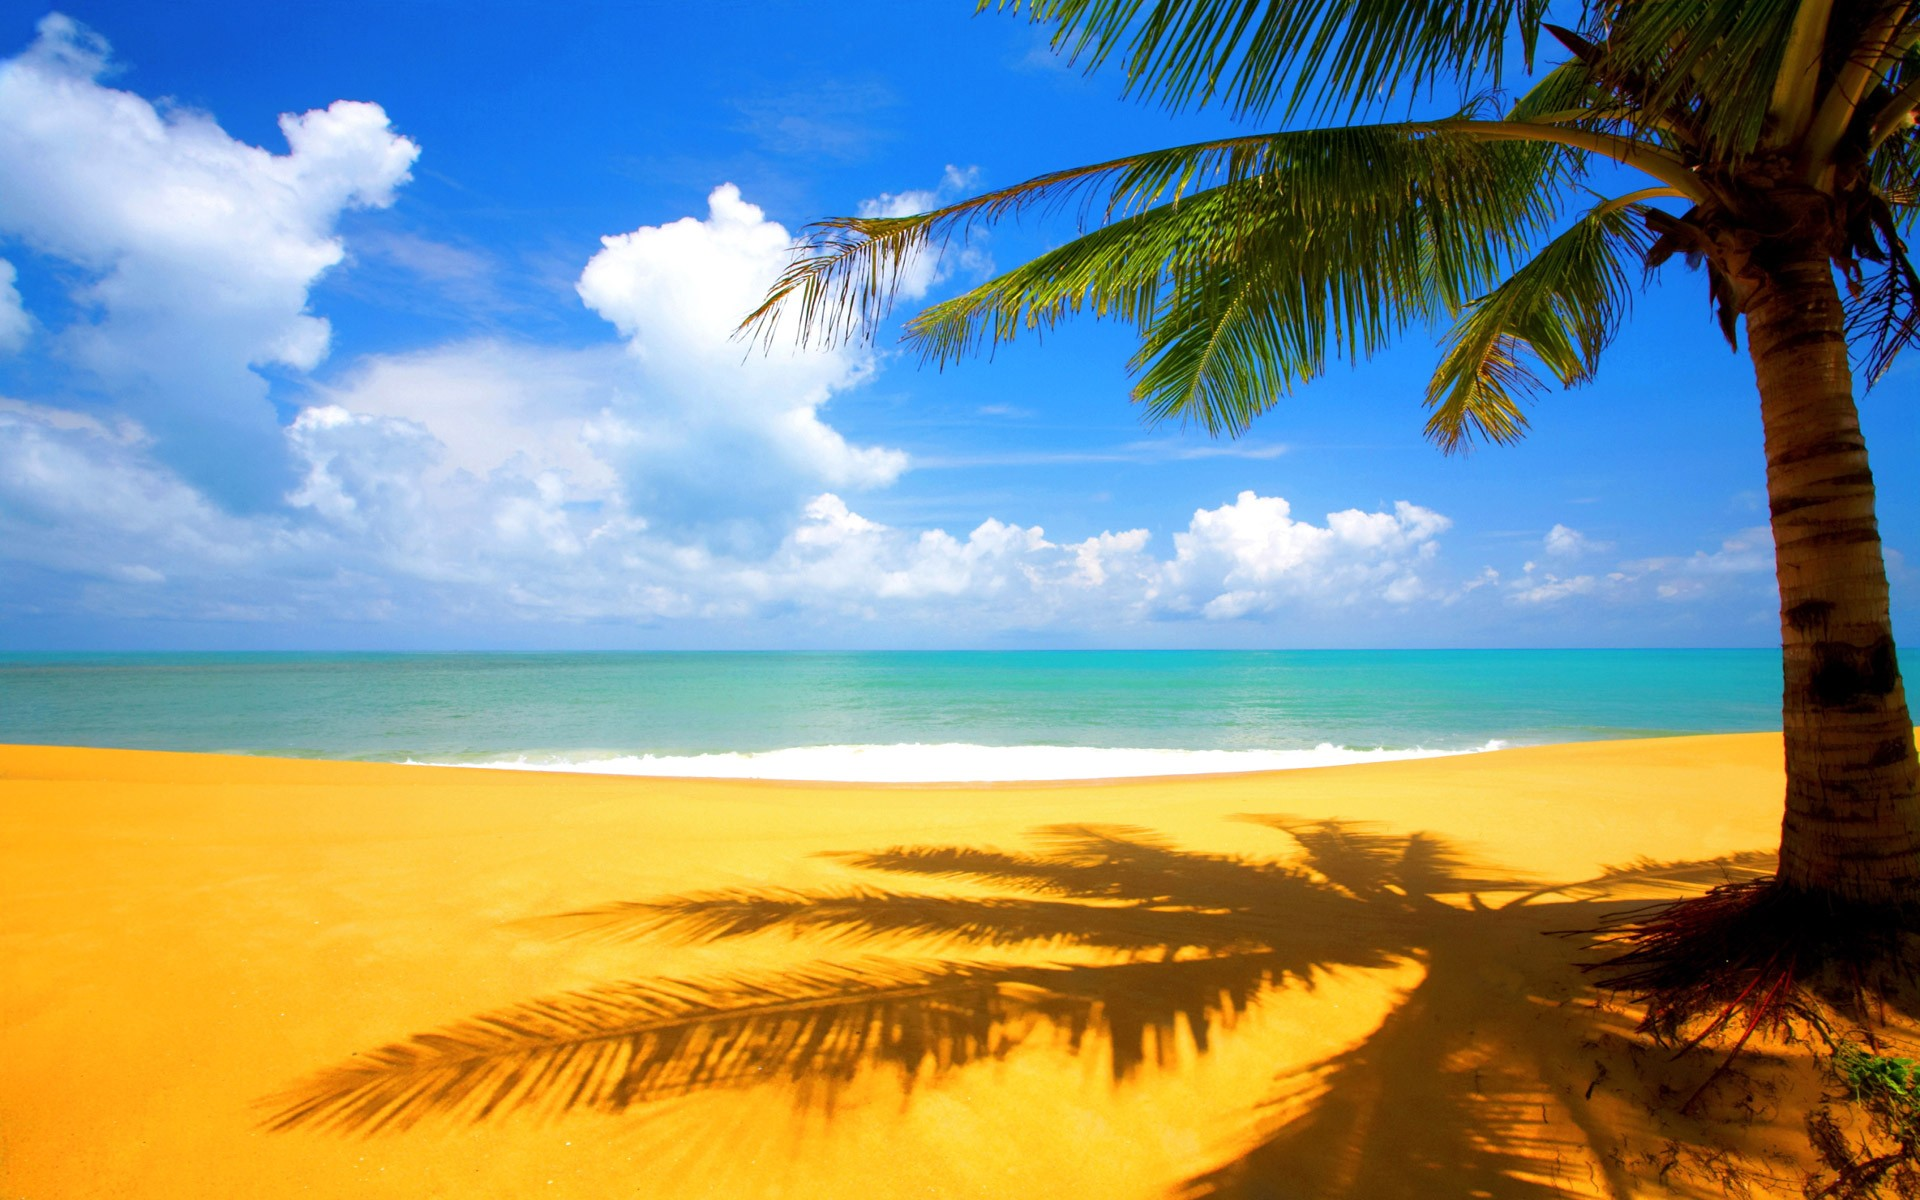 hd beach desktop backgrounds - wallpapersafari